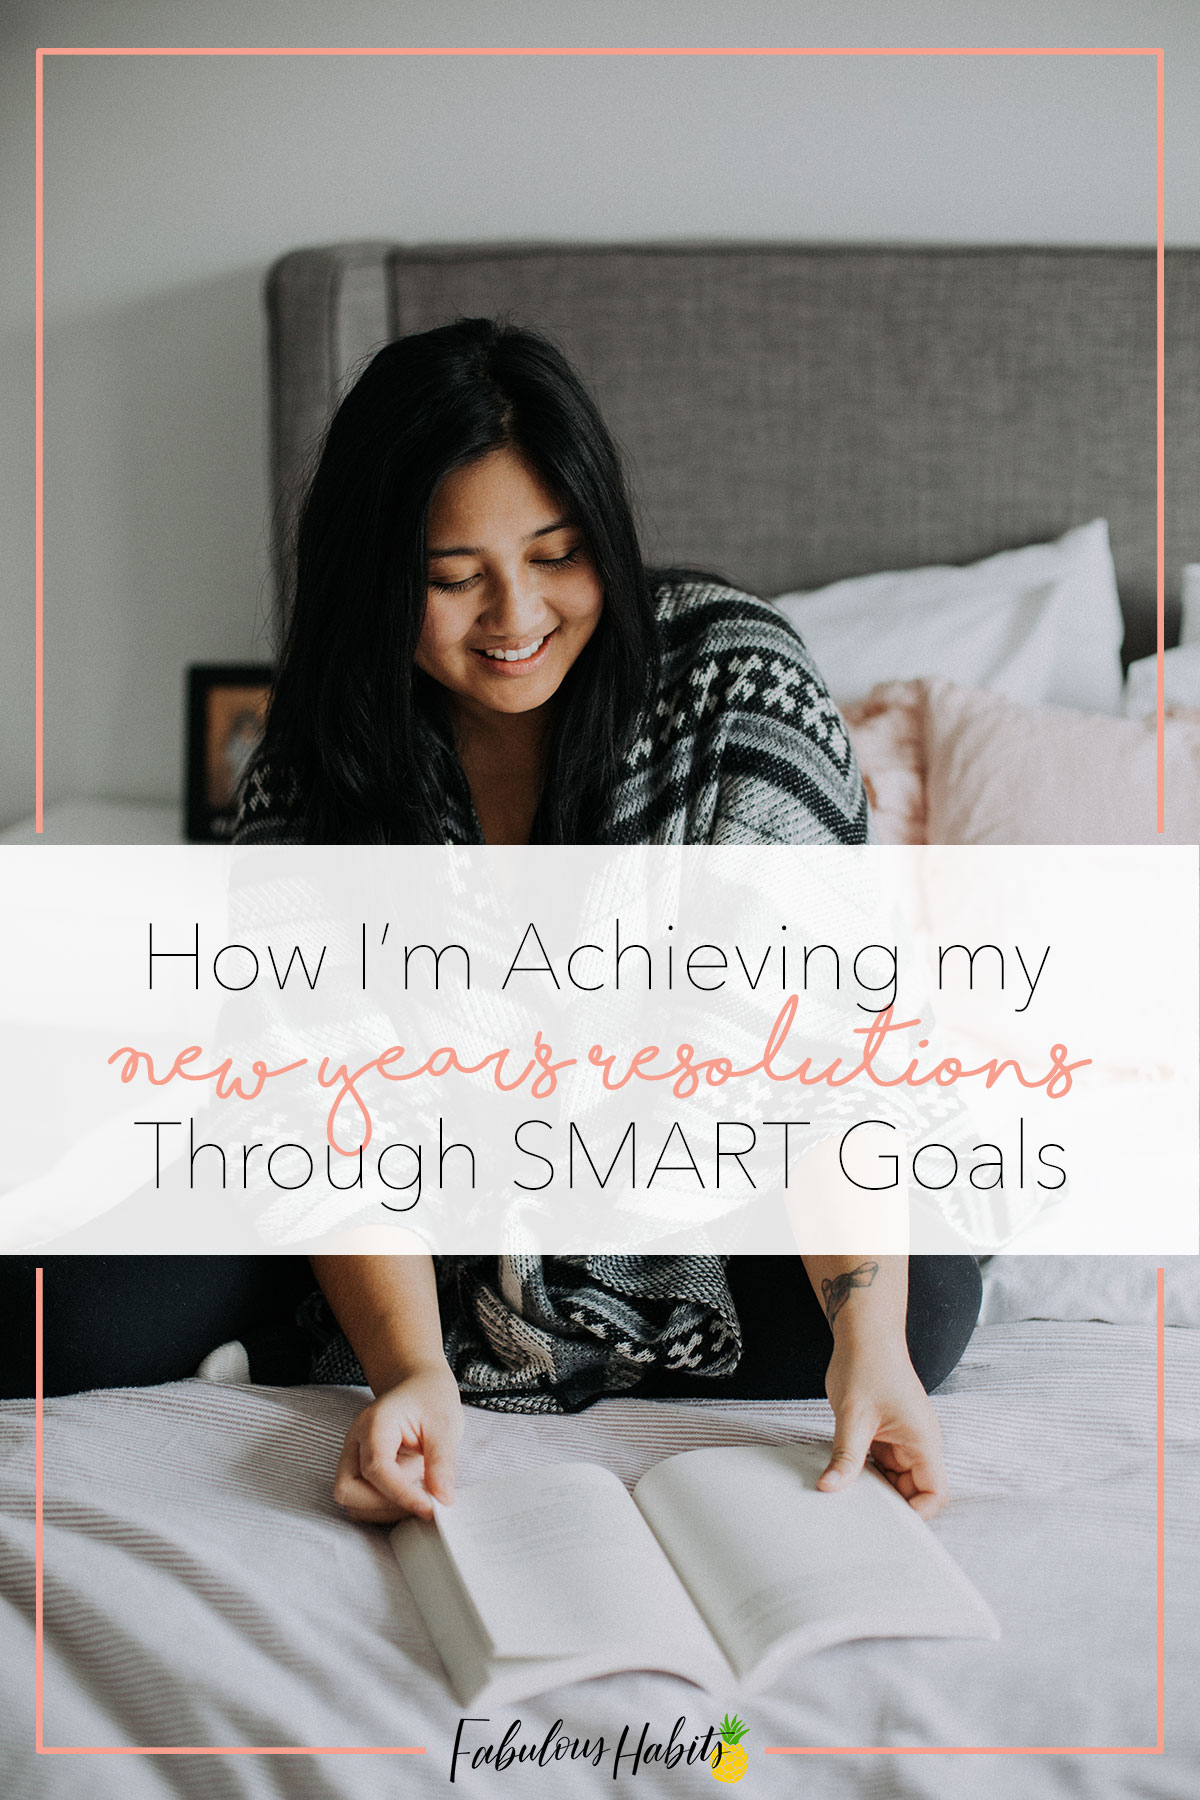 How to apply SMART goals in order to achieve your New Year's Resolutions